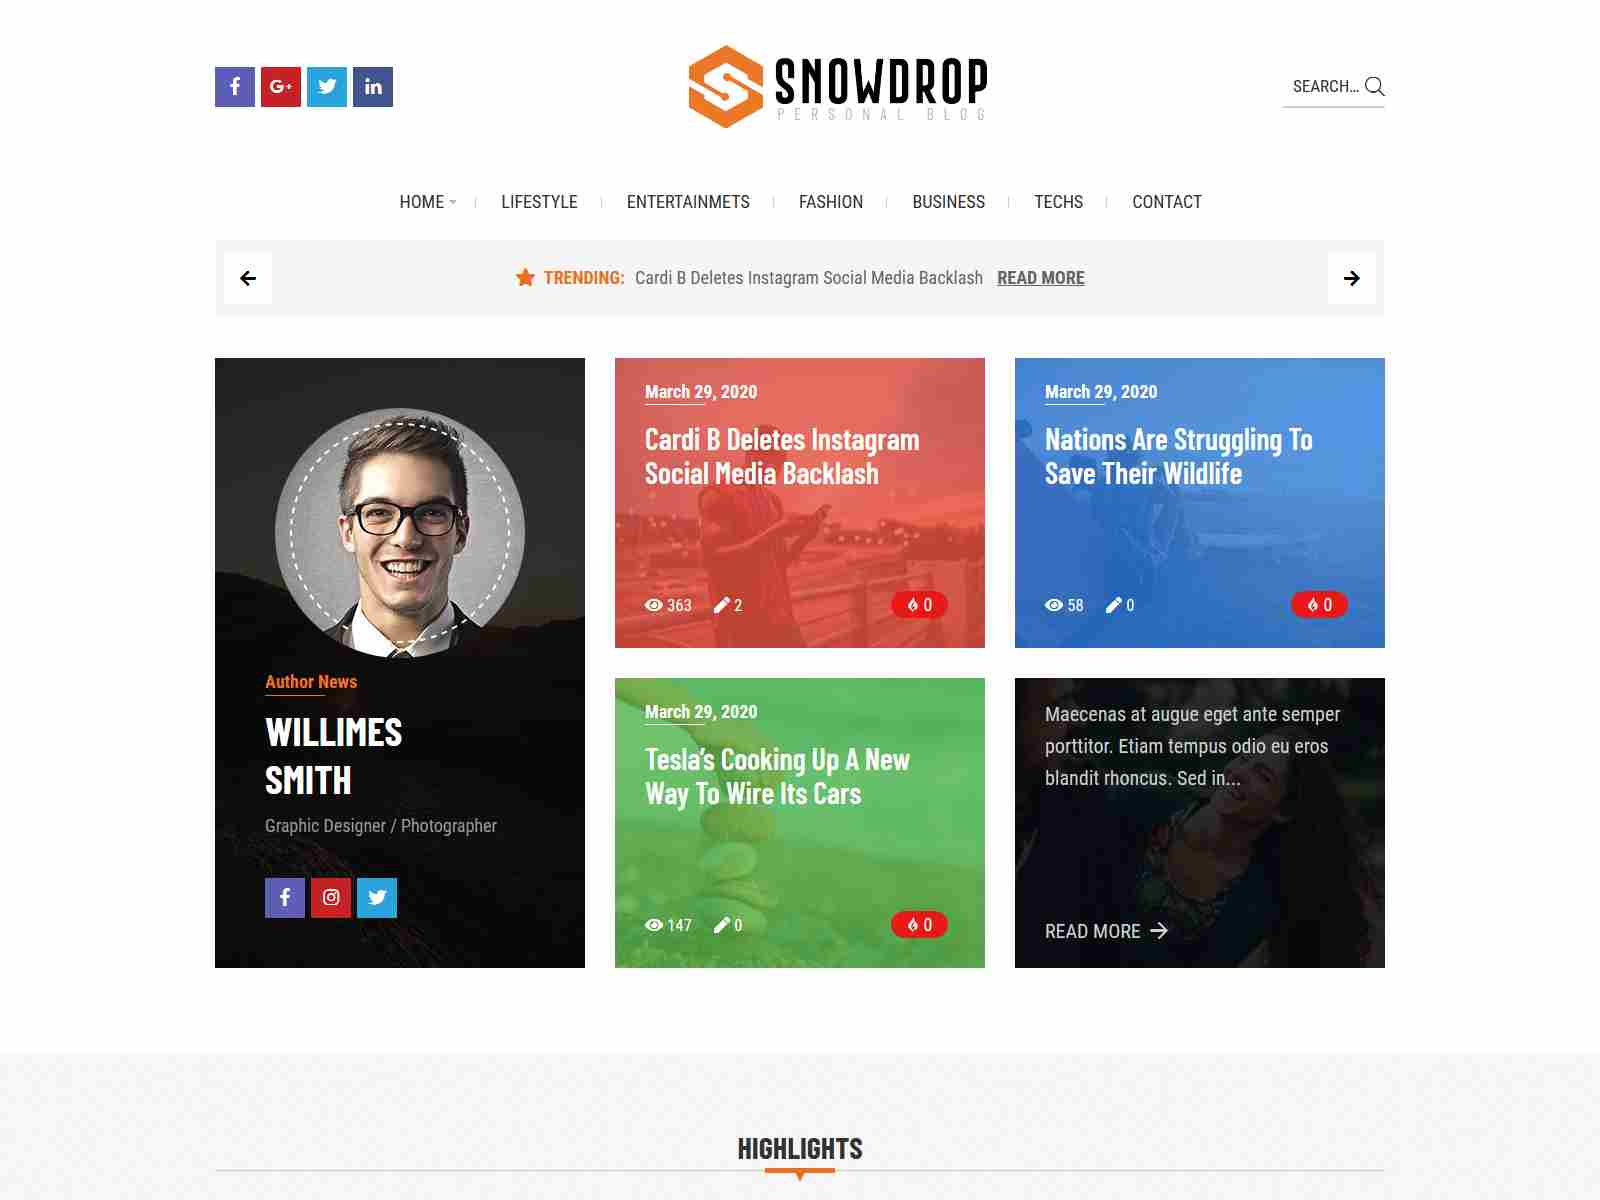 Snowdrop - Viral News & Magazine WordPress Theme wordpress news themes